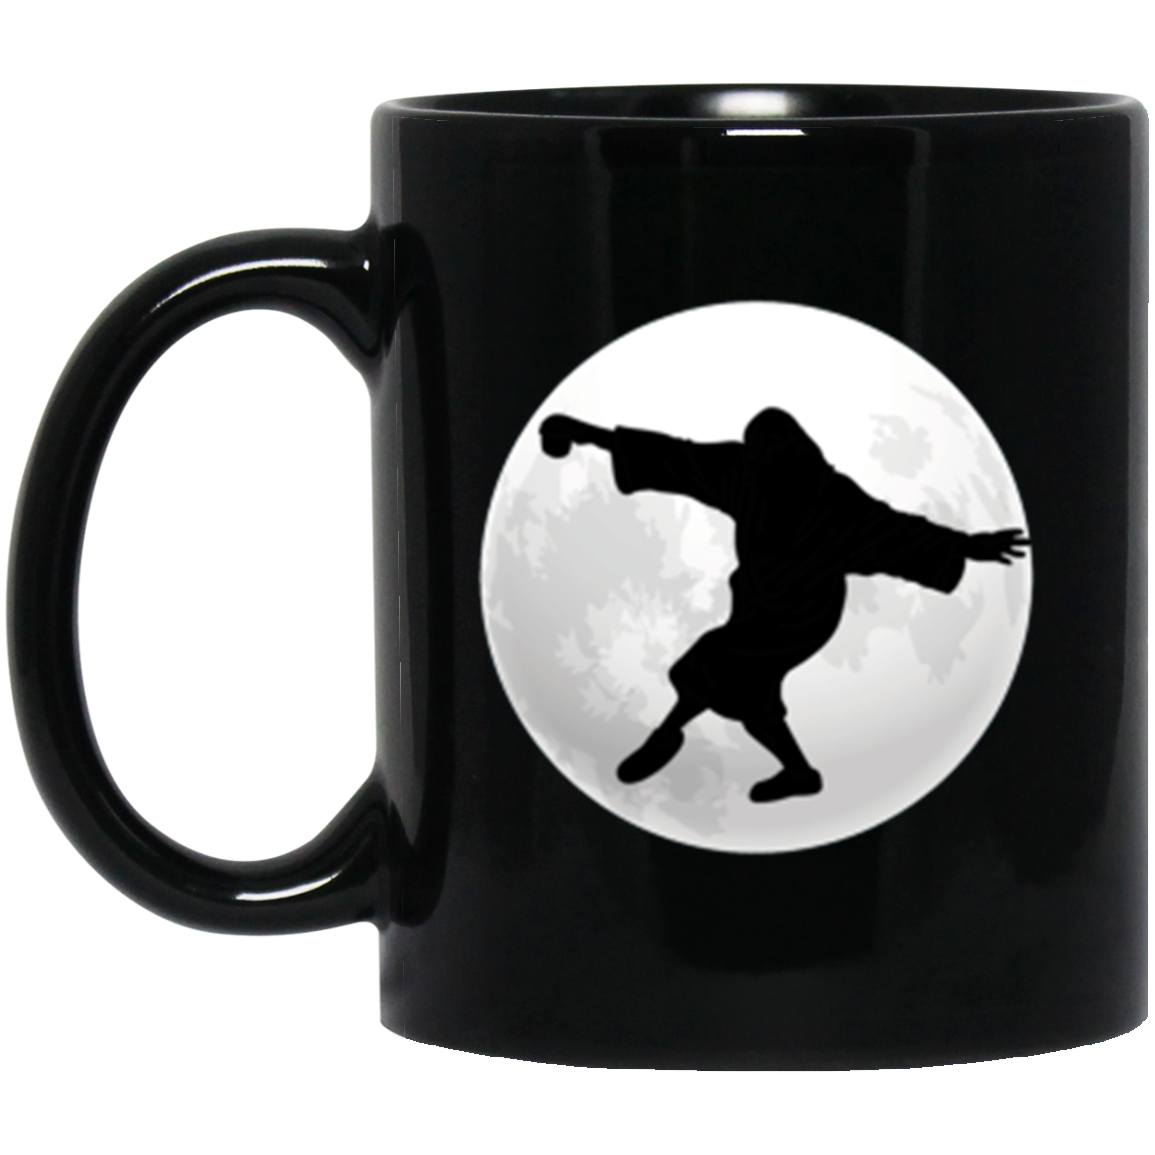 Drinkware - Abide Moon Mug 11oz (2-sided)